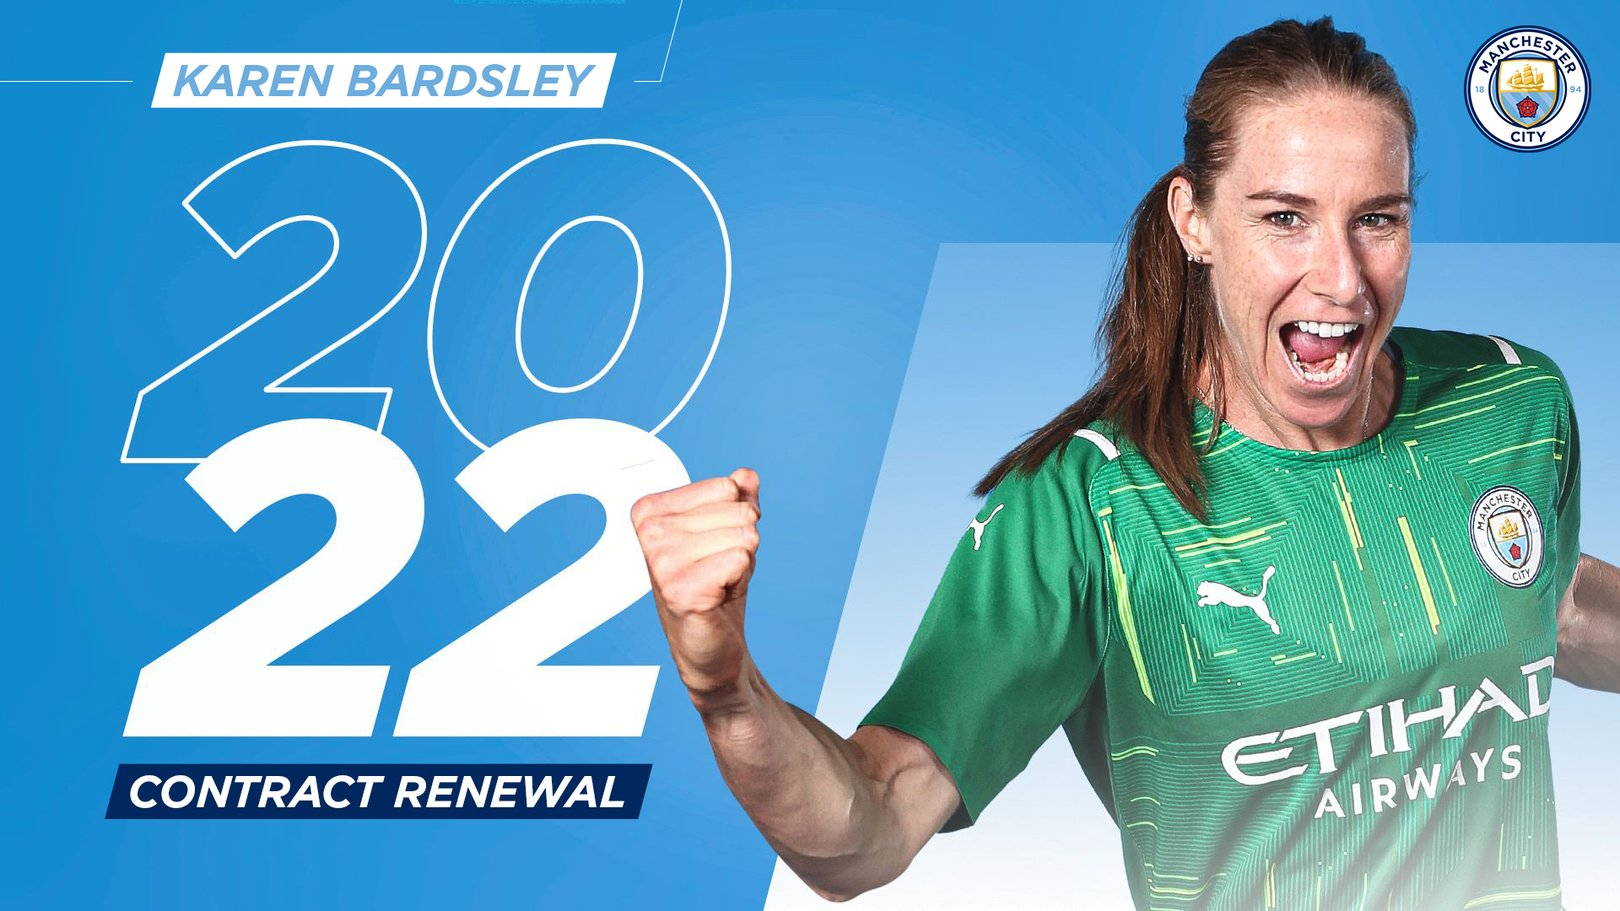 Karen Bardsley signs one-year contract extension